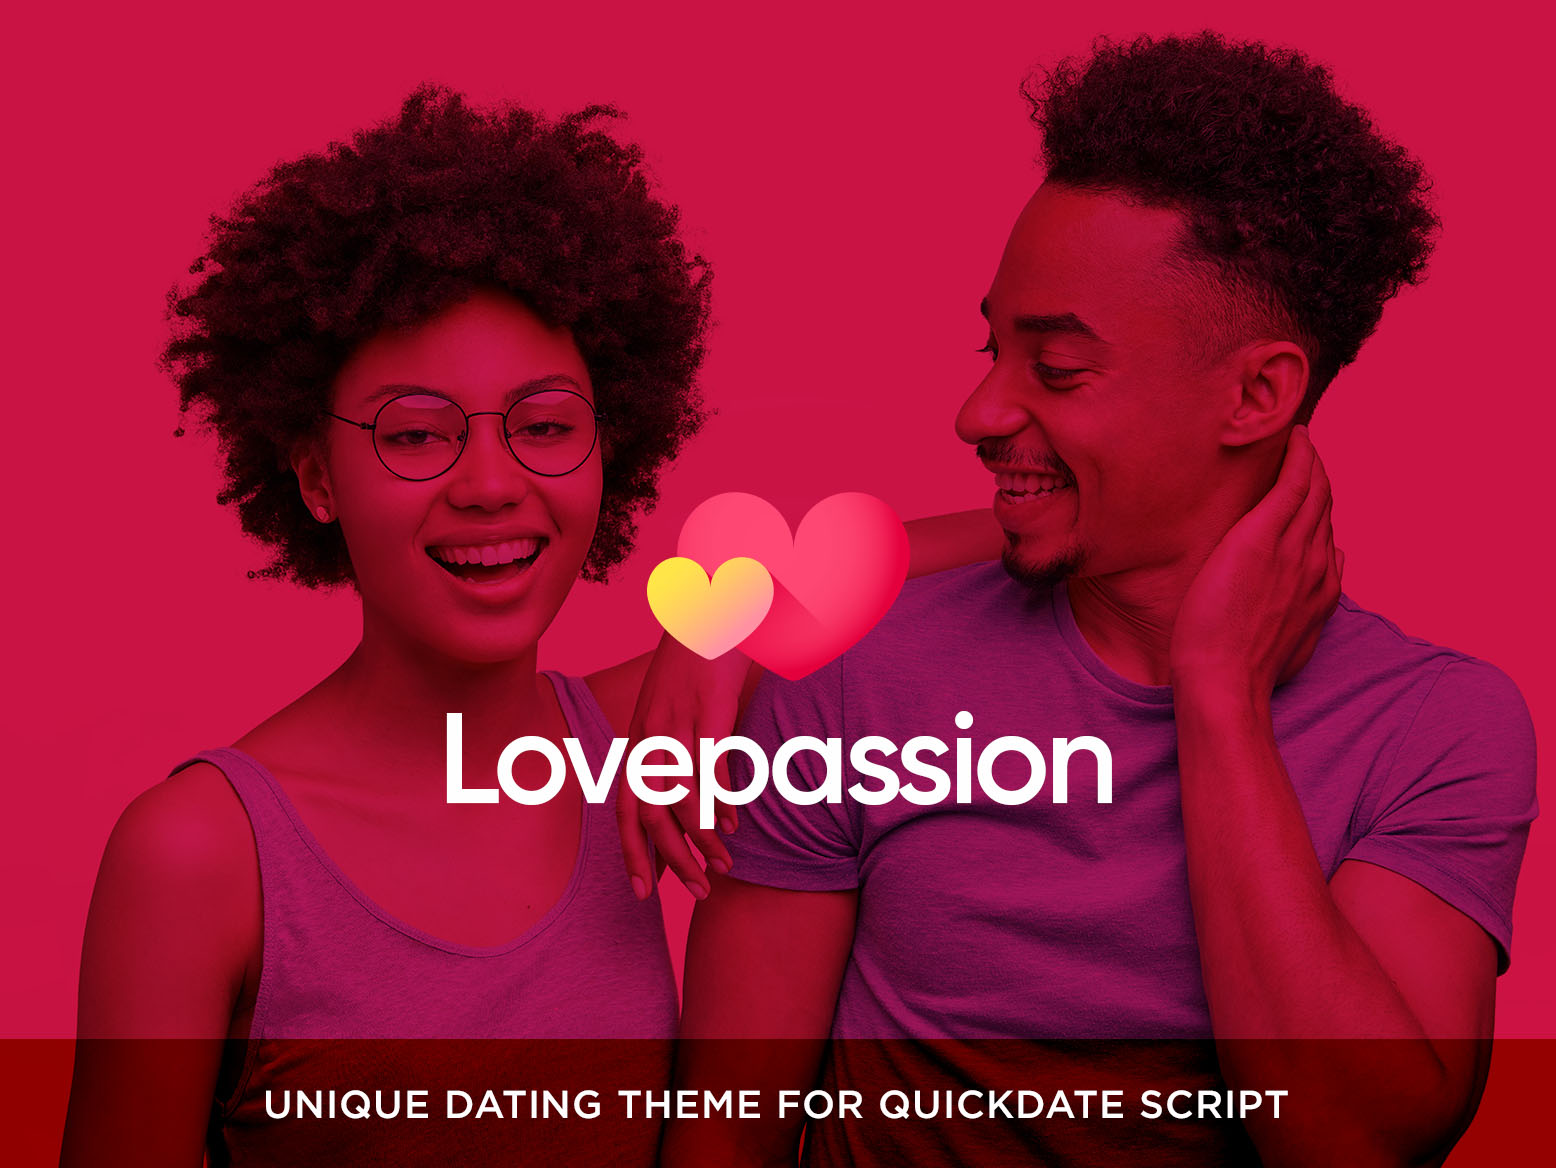 Quickdate is the Finest Global Dating Website Around. Connect With Local Singles & Start Your Online Dating Adventure! Enjoy Worldwide Dating with Thrilling Online Chat & More